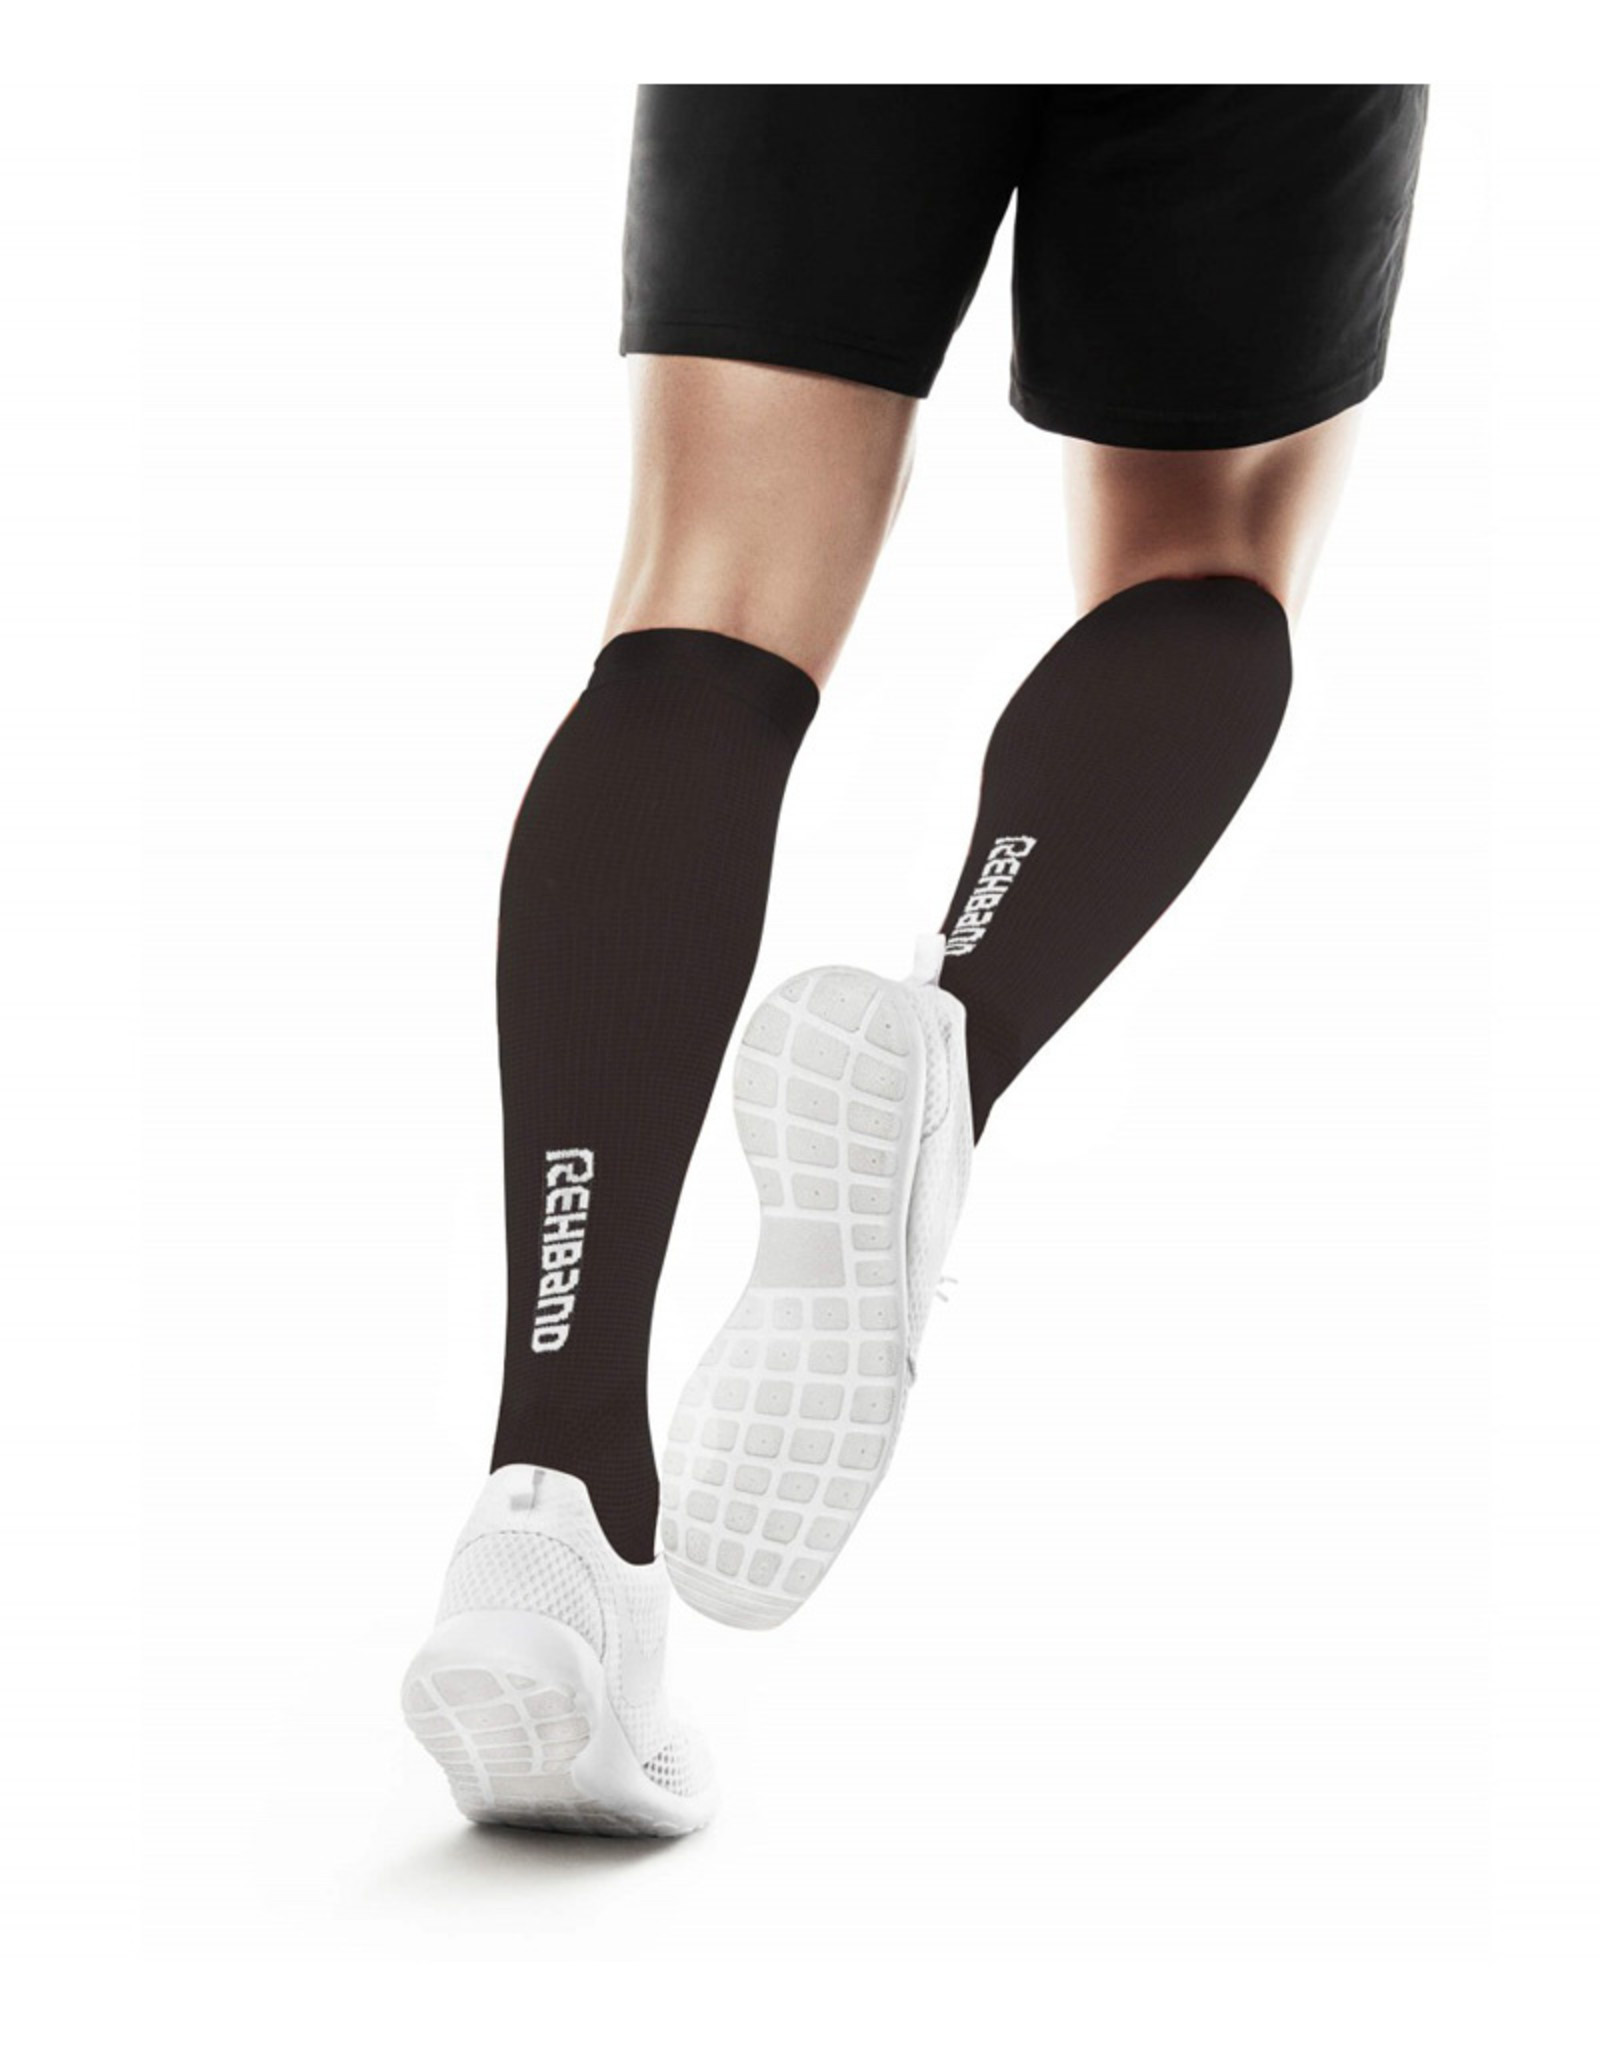 Rehband Qd Compression Socks Chaussettes De Compression - Noir